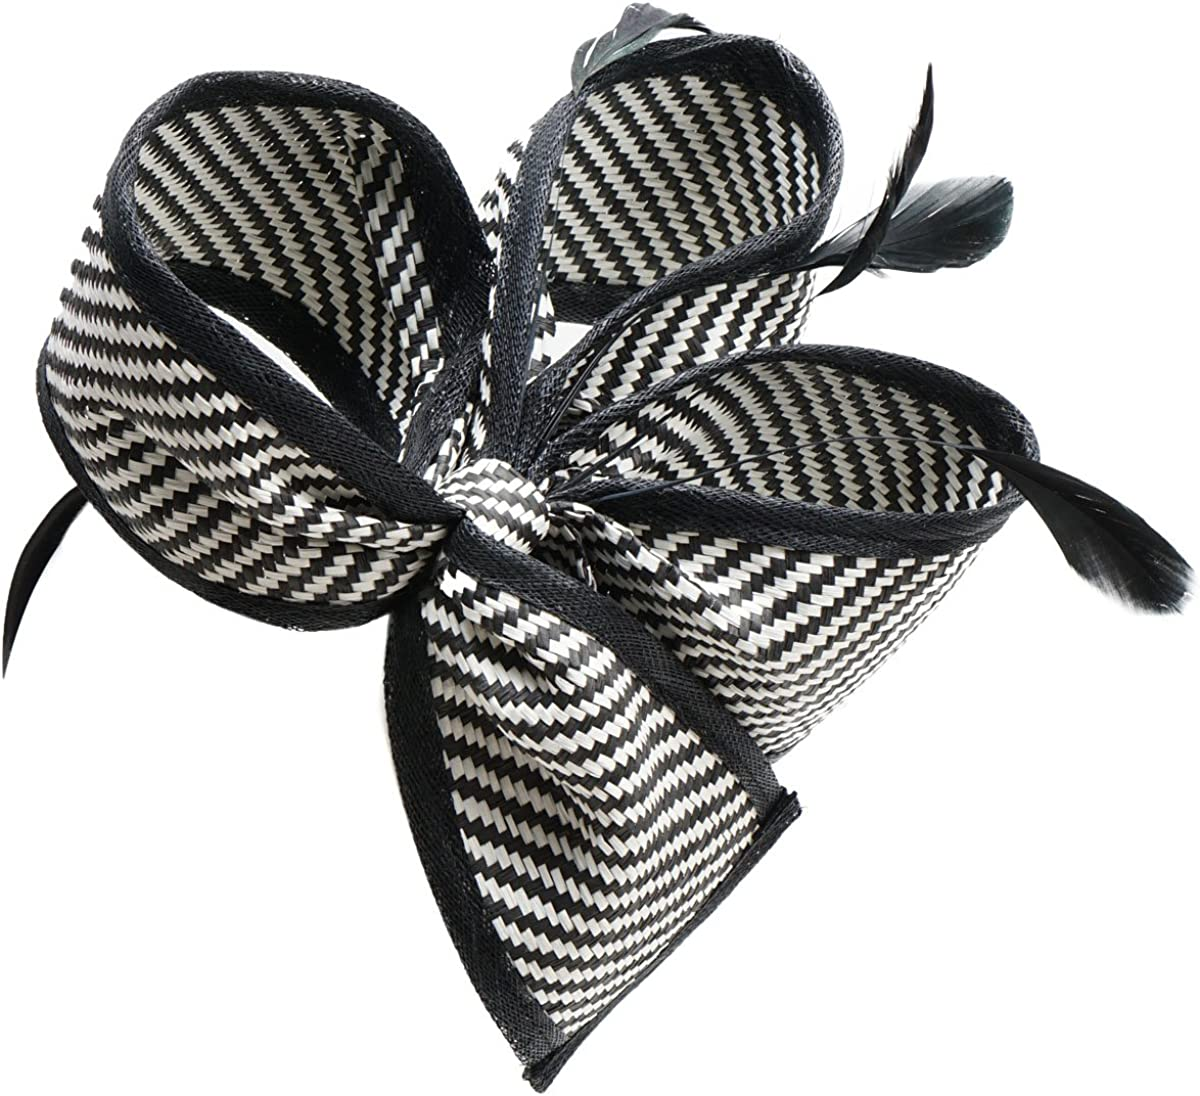 Lawliet Womens Retro Black Mix White Sinamay Floral Fascinator Bow Hat